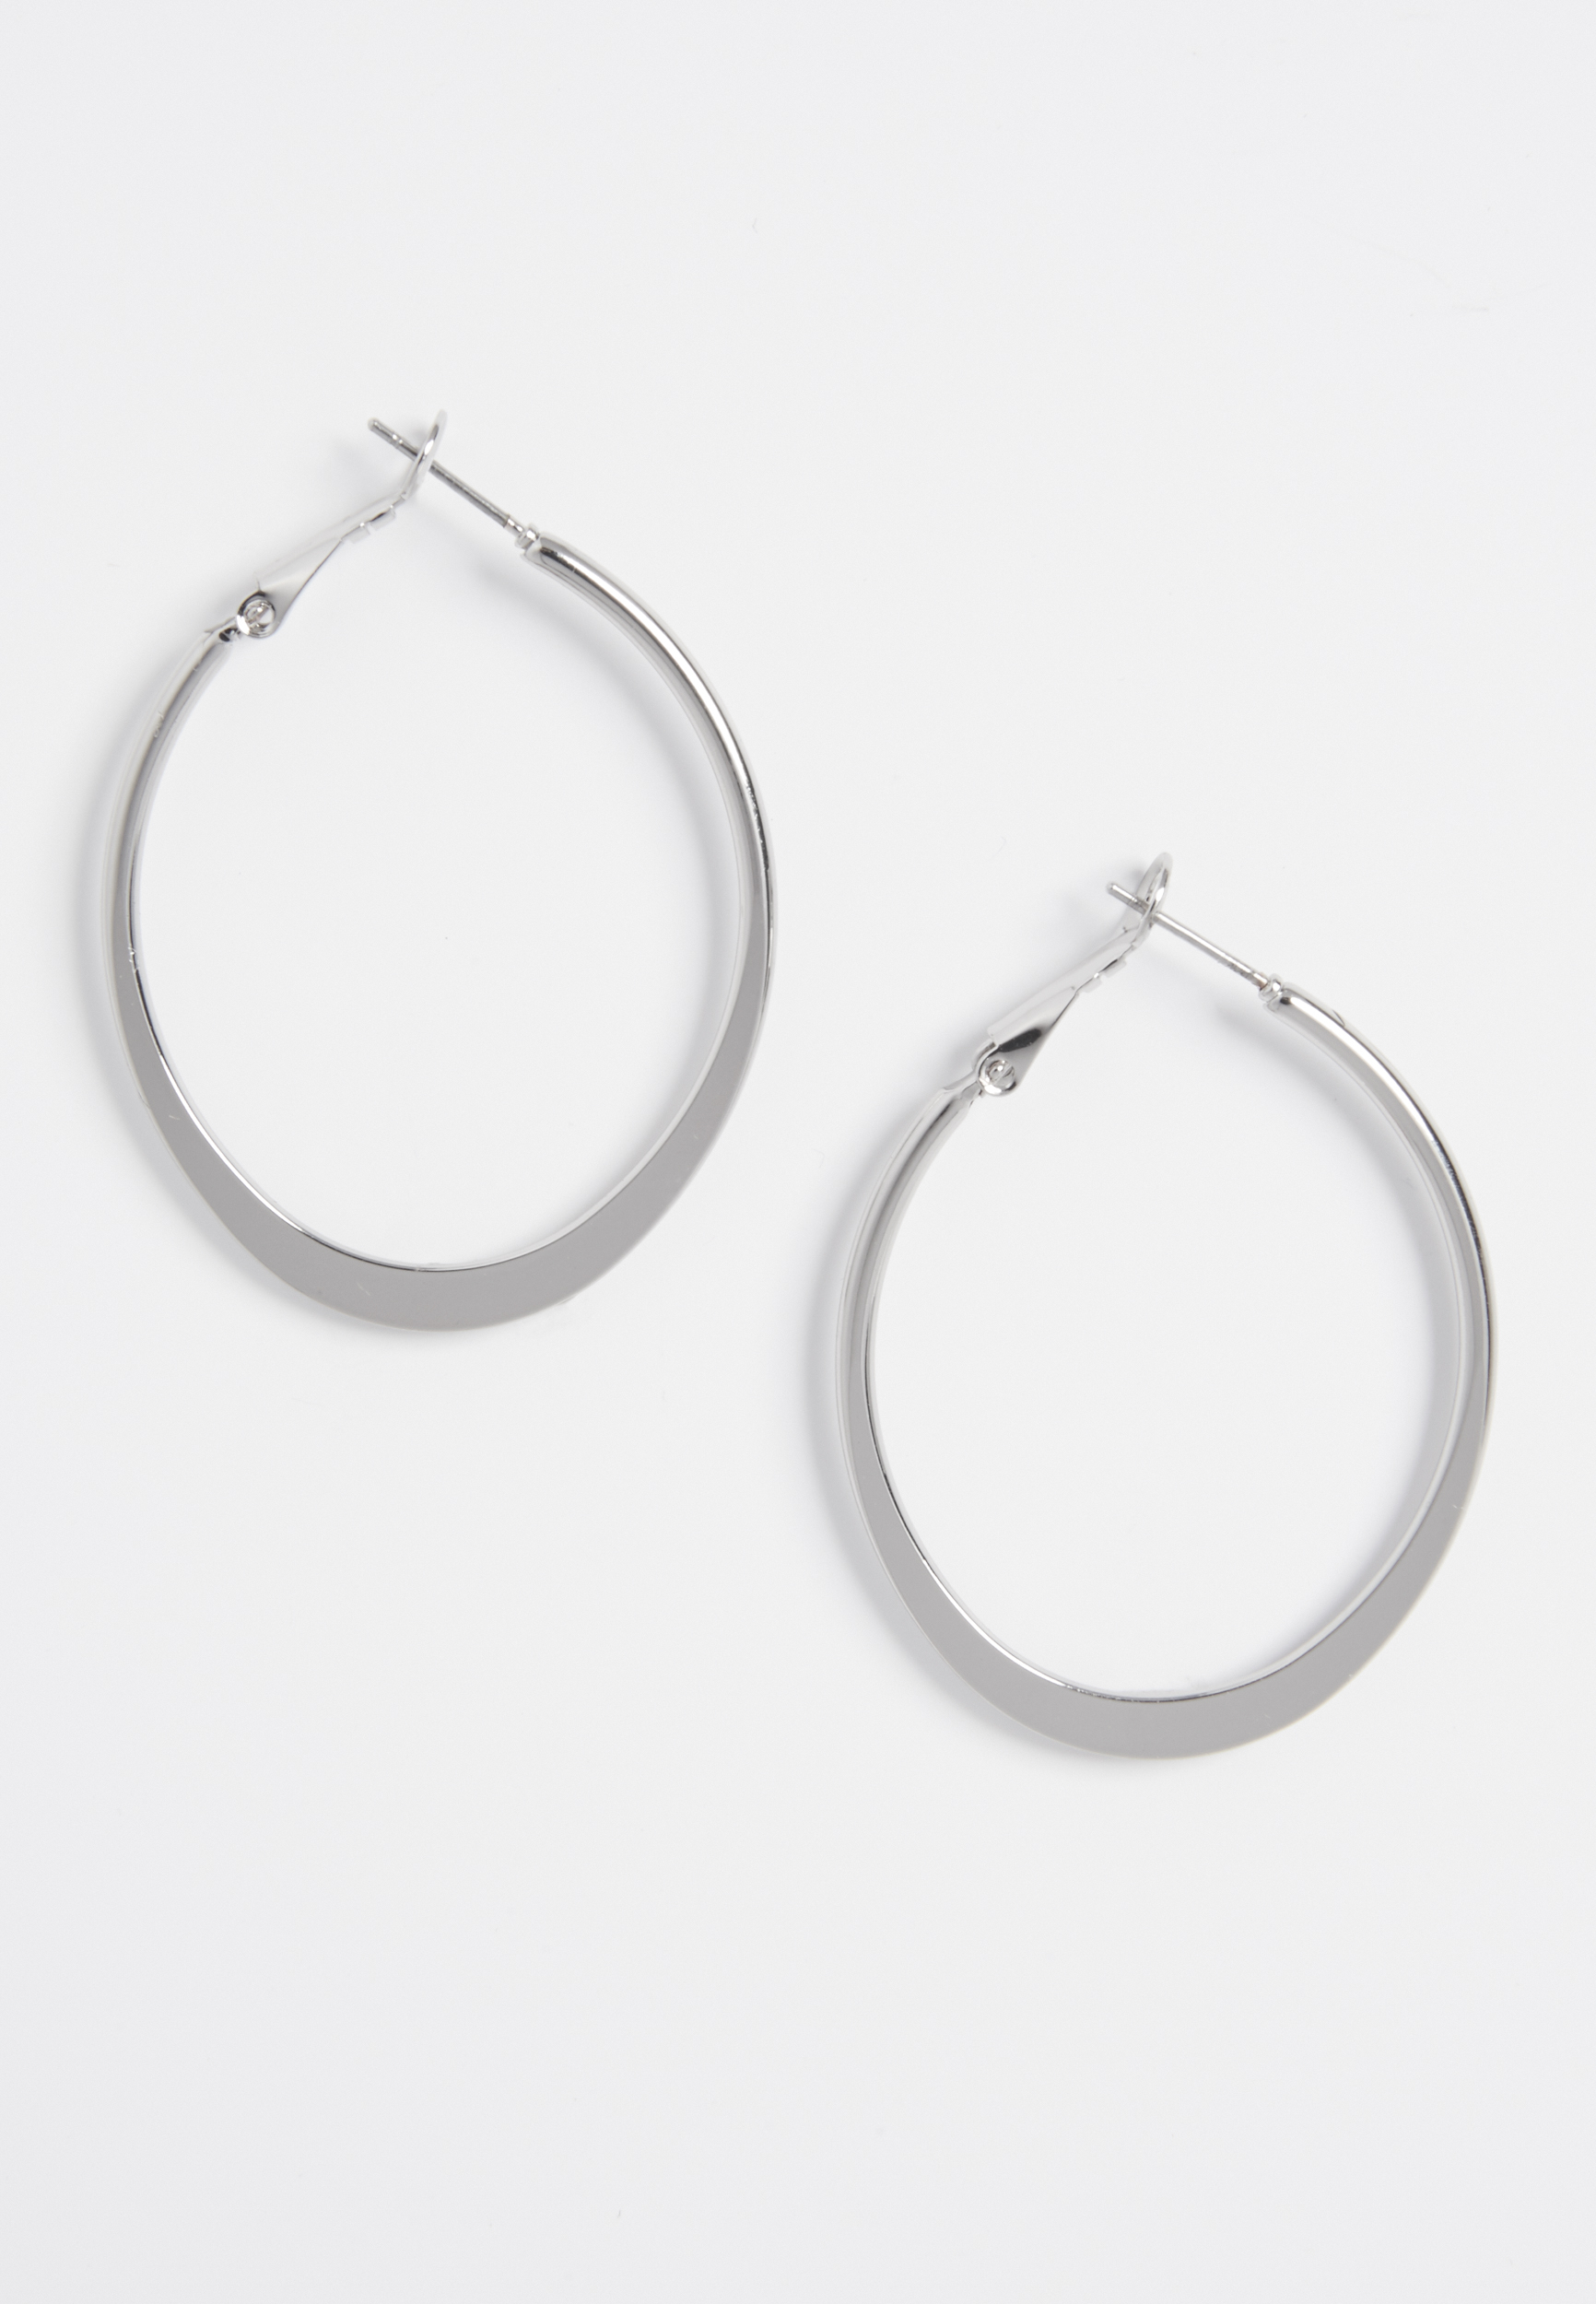 Maurices Oblong Shaped Hoop Earrings